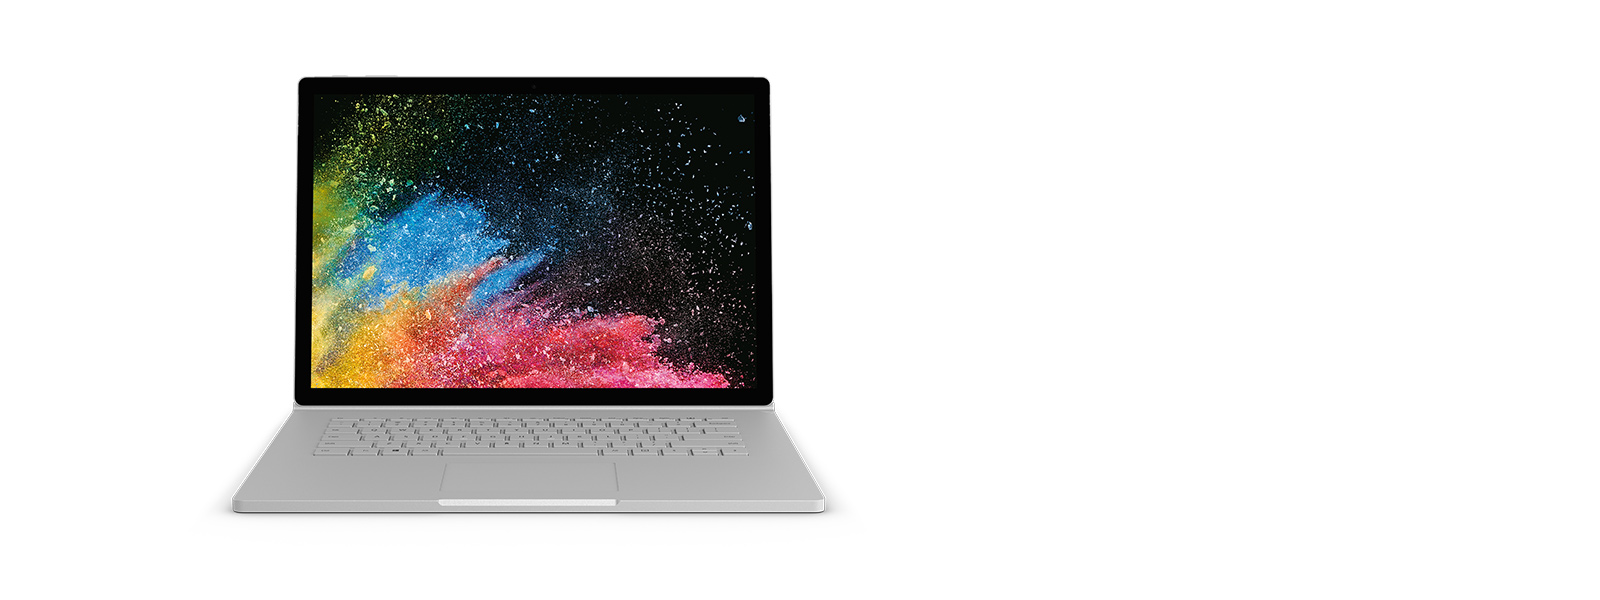 Surface Book 2 in laptopmodus met schermopname.